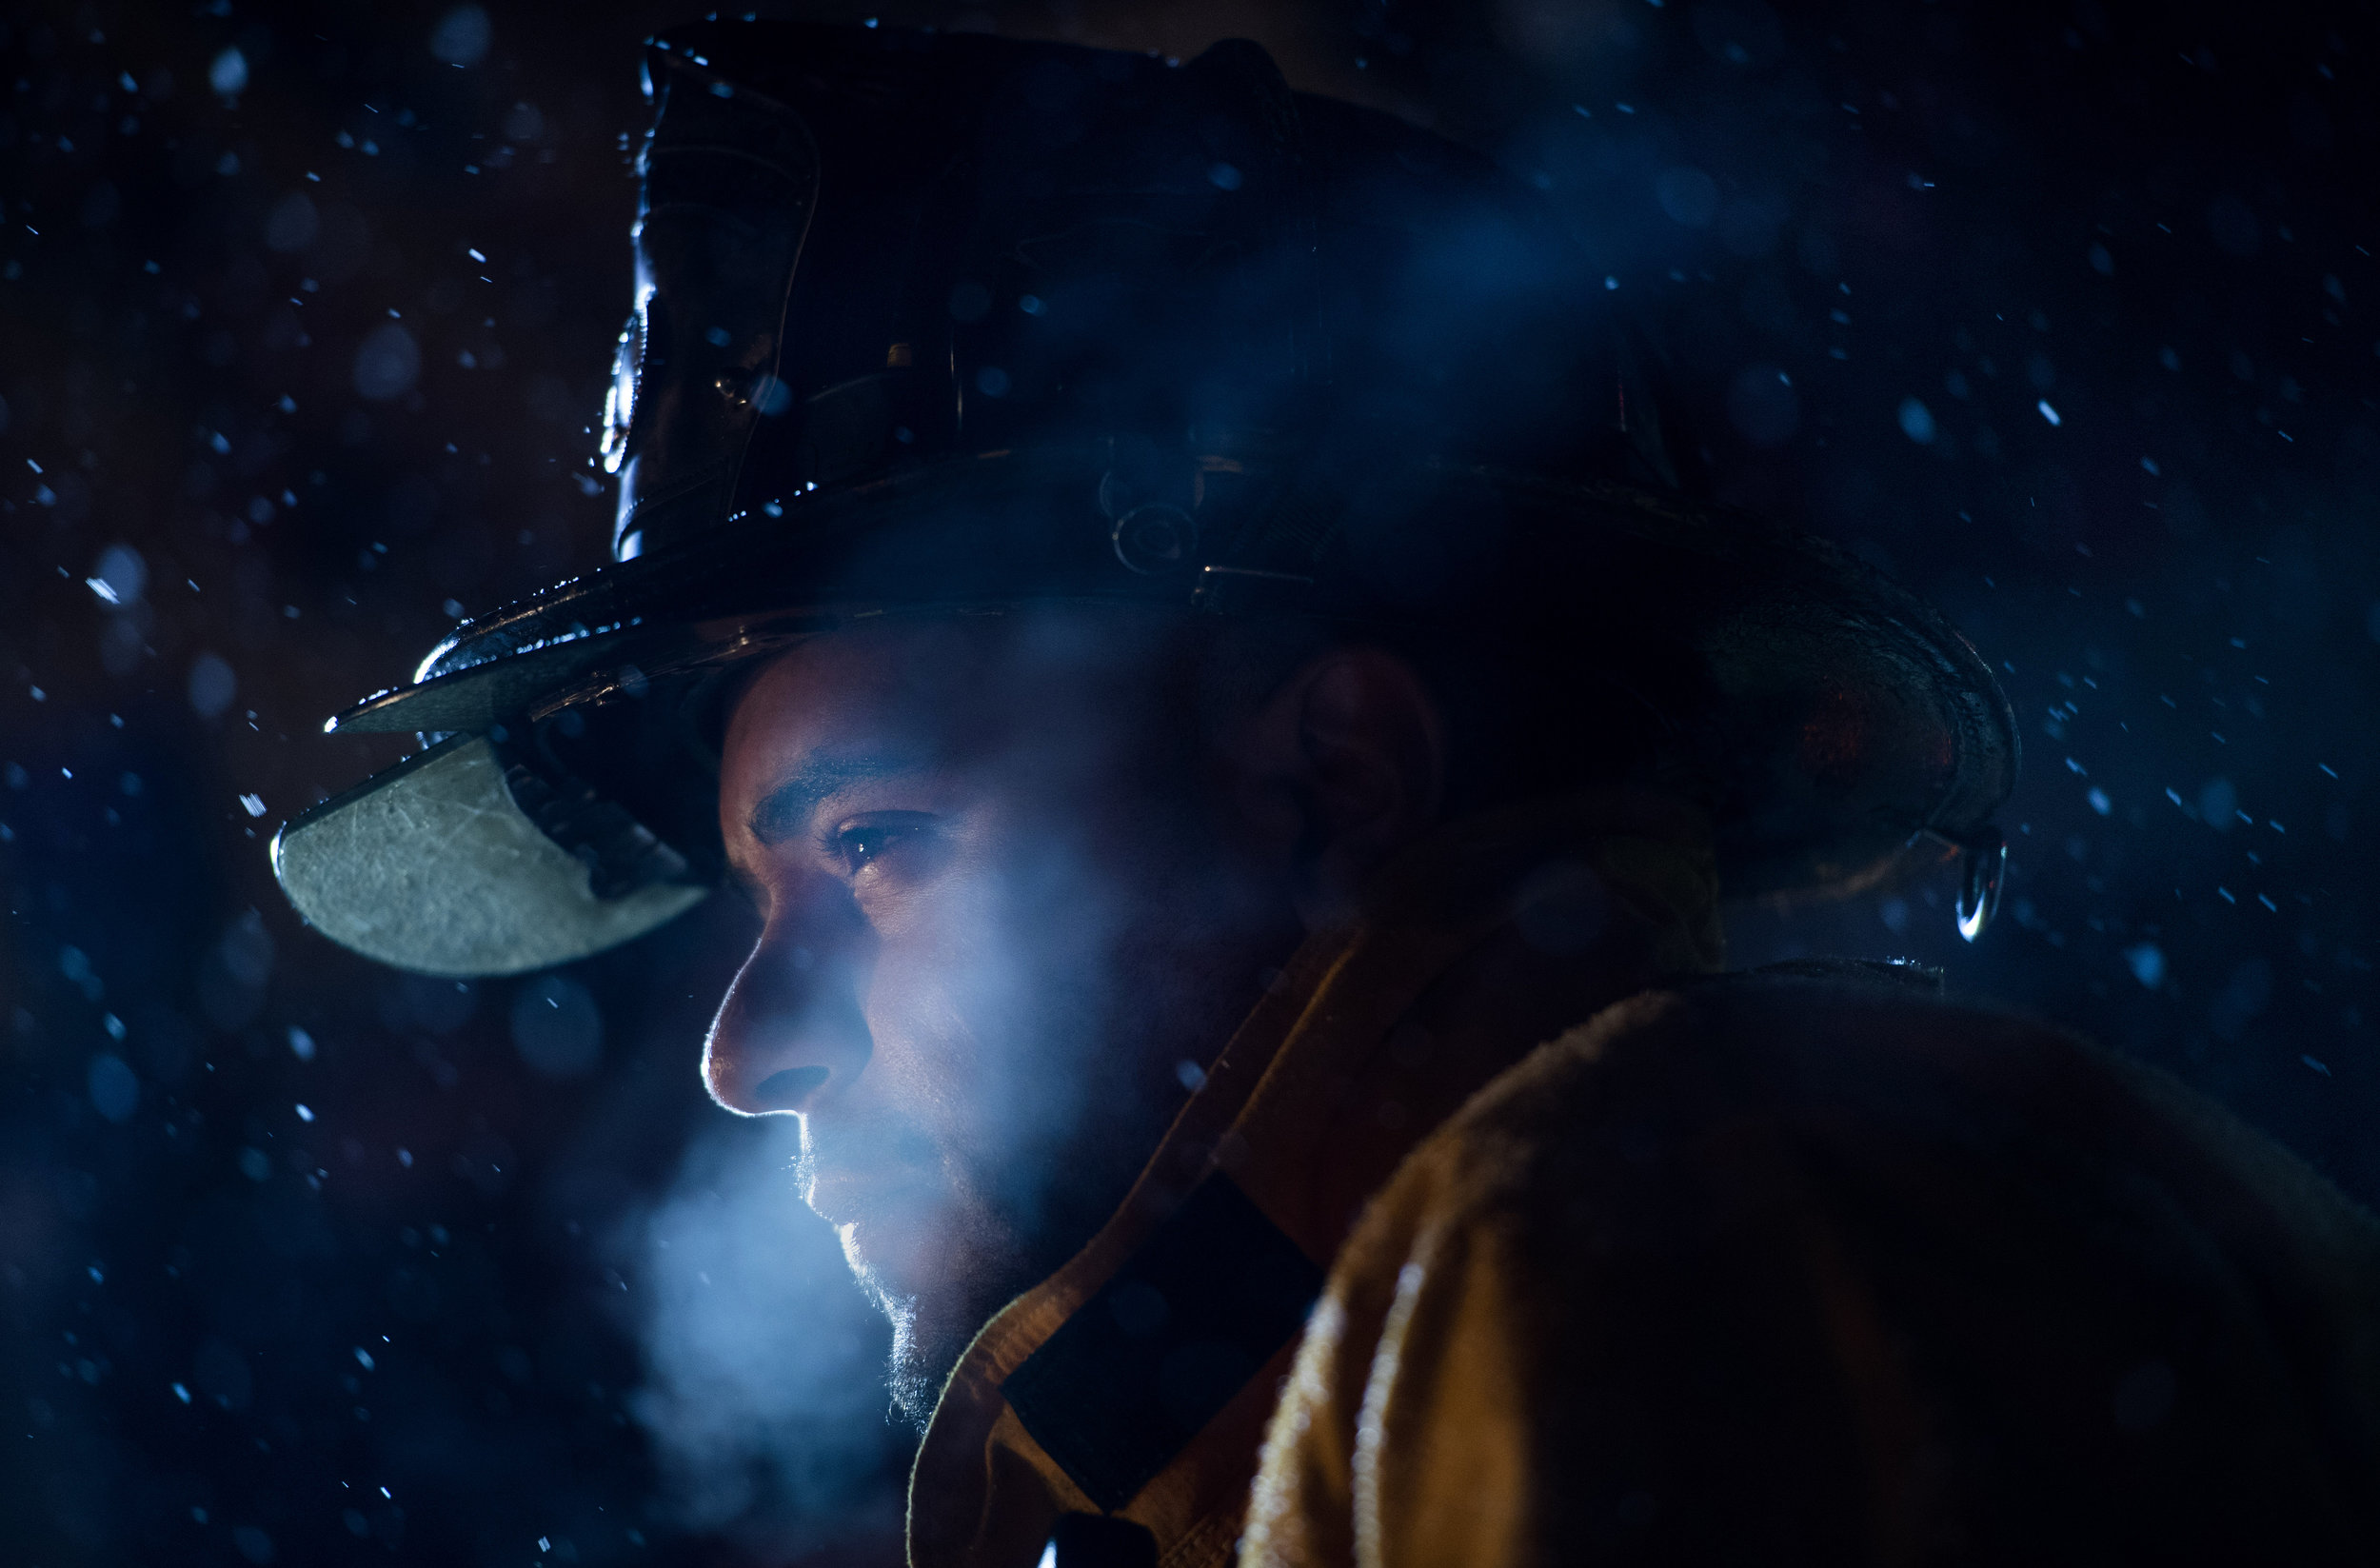 Forbes Road Fire Department Station 90 Firefighter Brian Walters exhales in the cold weather while fighting a basement fire at 911 Country Club Drive in Hempfield on Thursday, Jan. 5, 2017. (Steph Chambers | Tribune-Review)